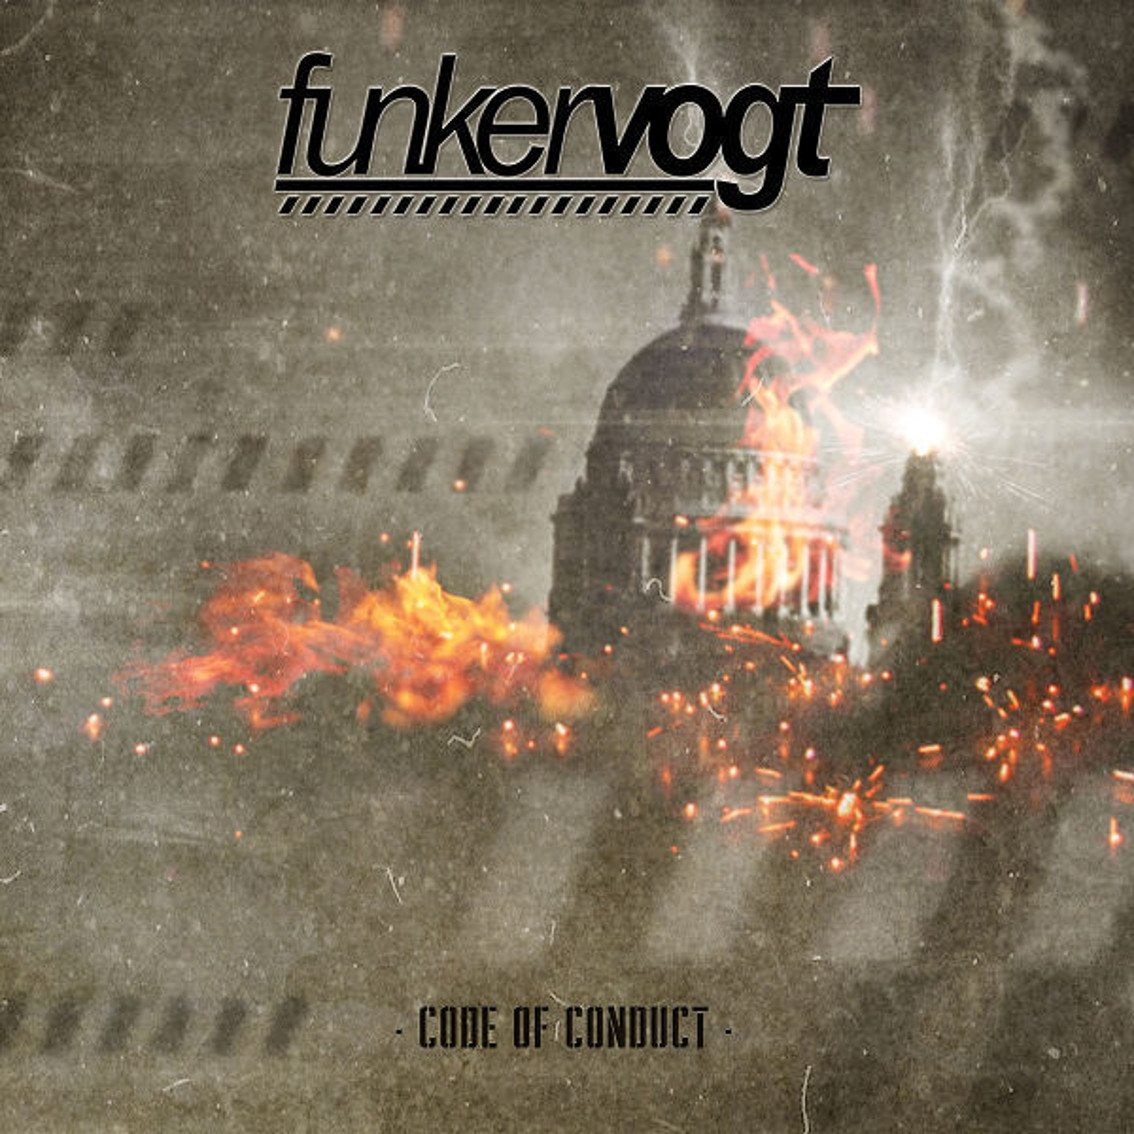 Funker Vogt to release'Code of Conduct' in June - pre-orders available now